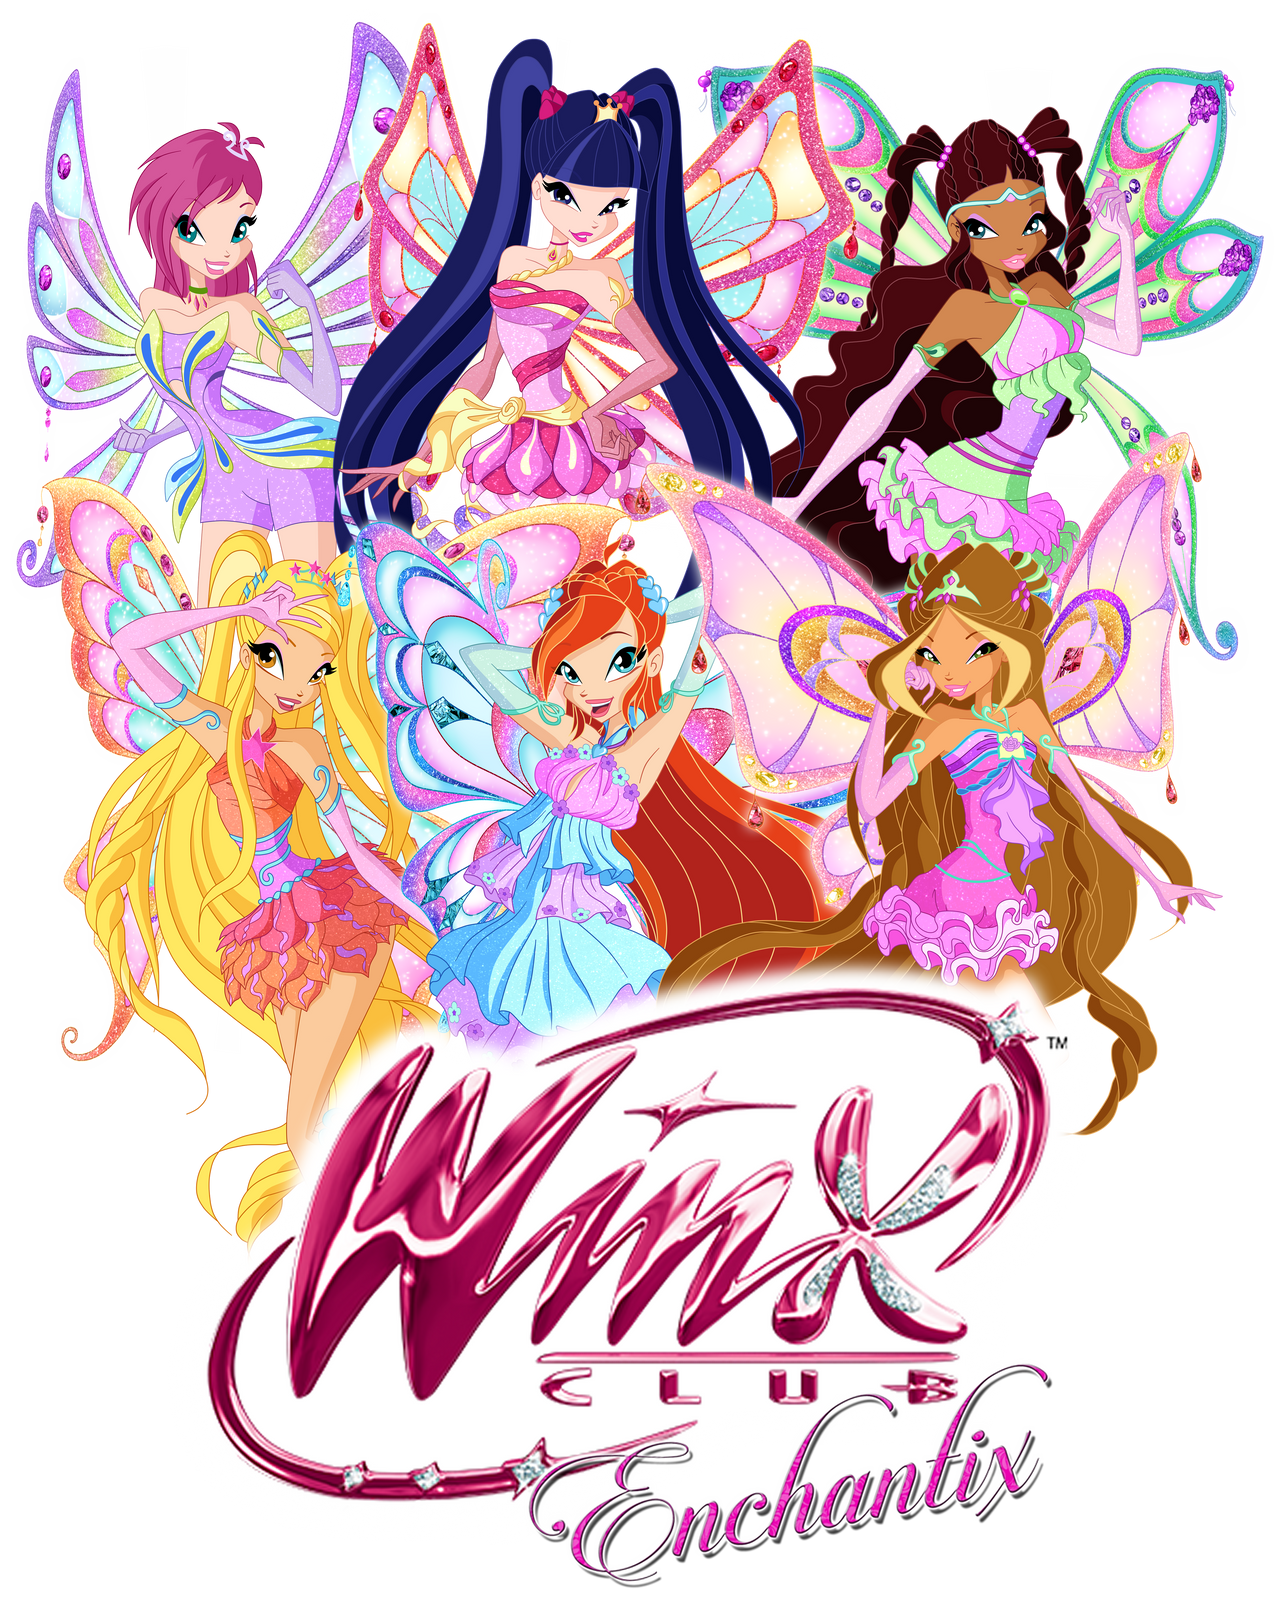 Winx Club Season 8 Enchantix By Rosesweety On Deviantart